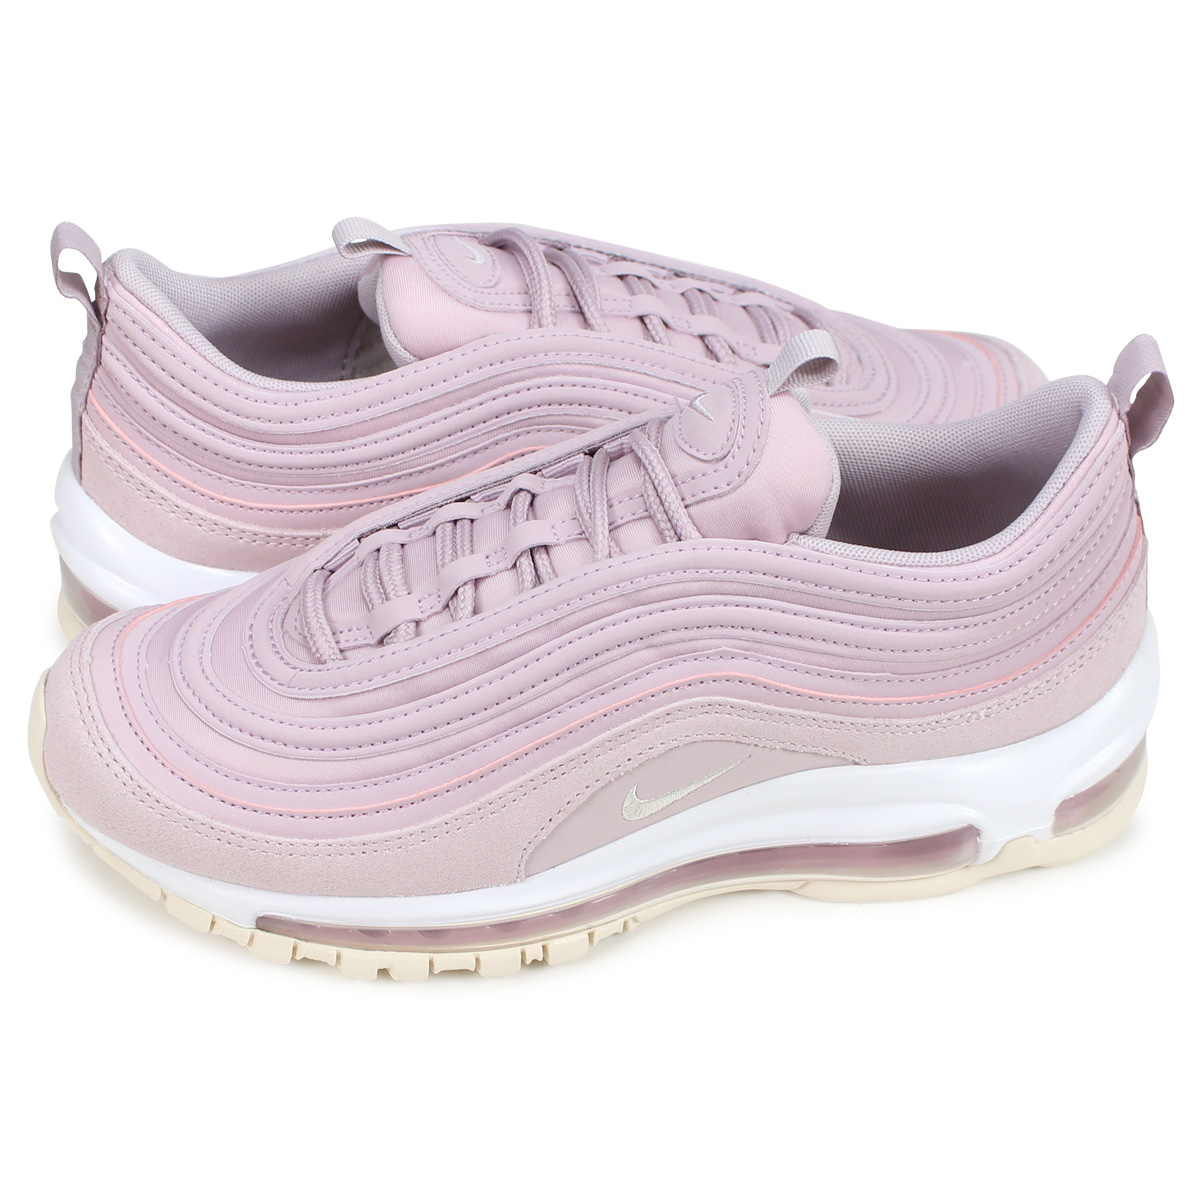 cheaper a973c de84e Nike NIKE Air Max 97 sneakers Lady's WMNS AIR MAX 97 PREMIUM pink  917,646-500